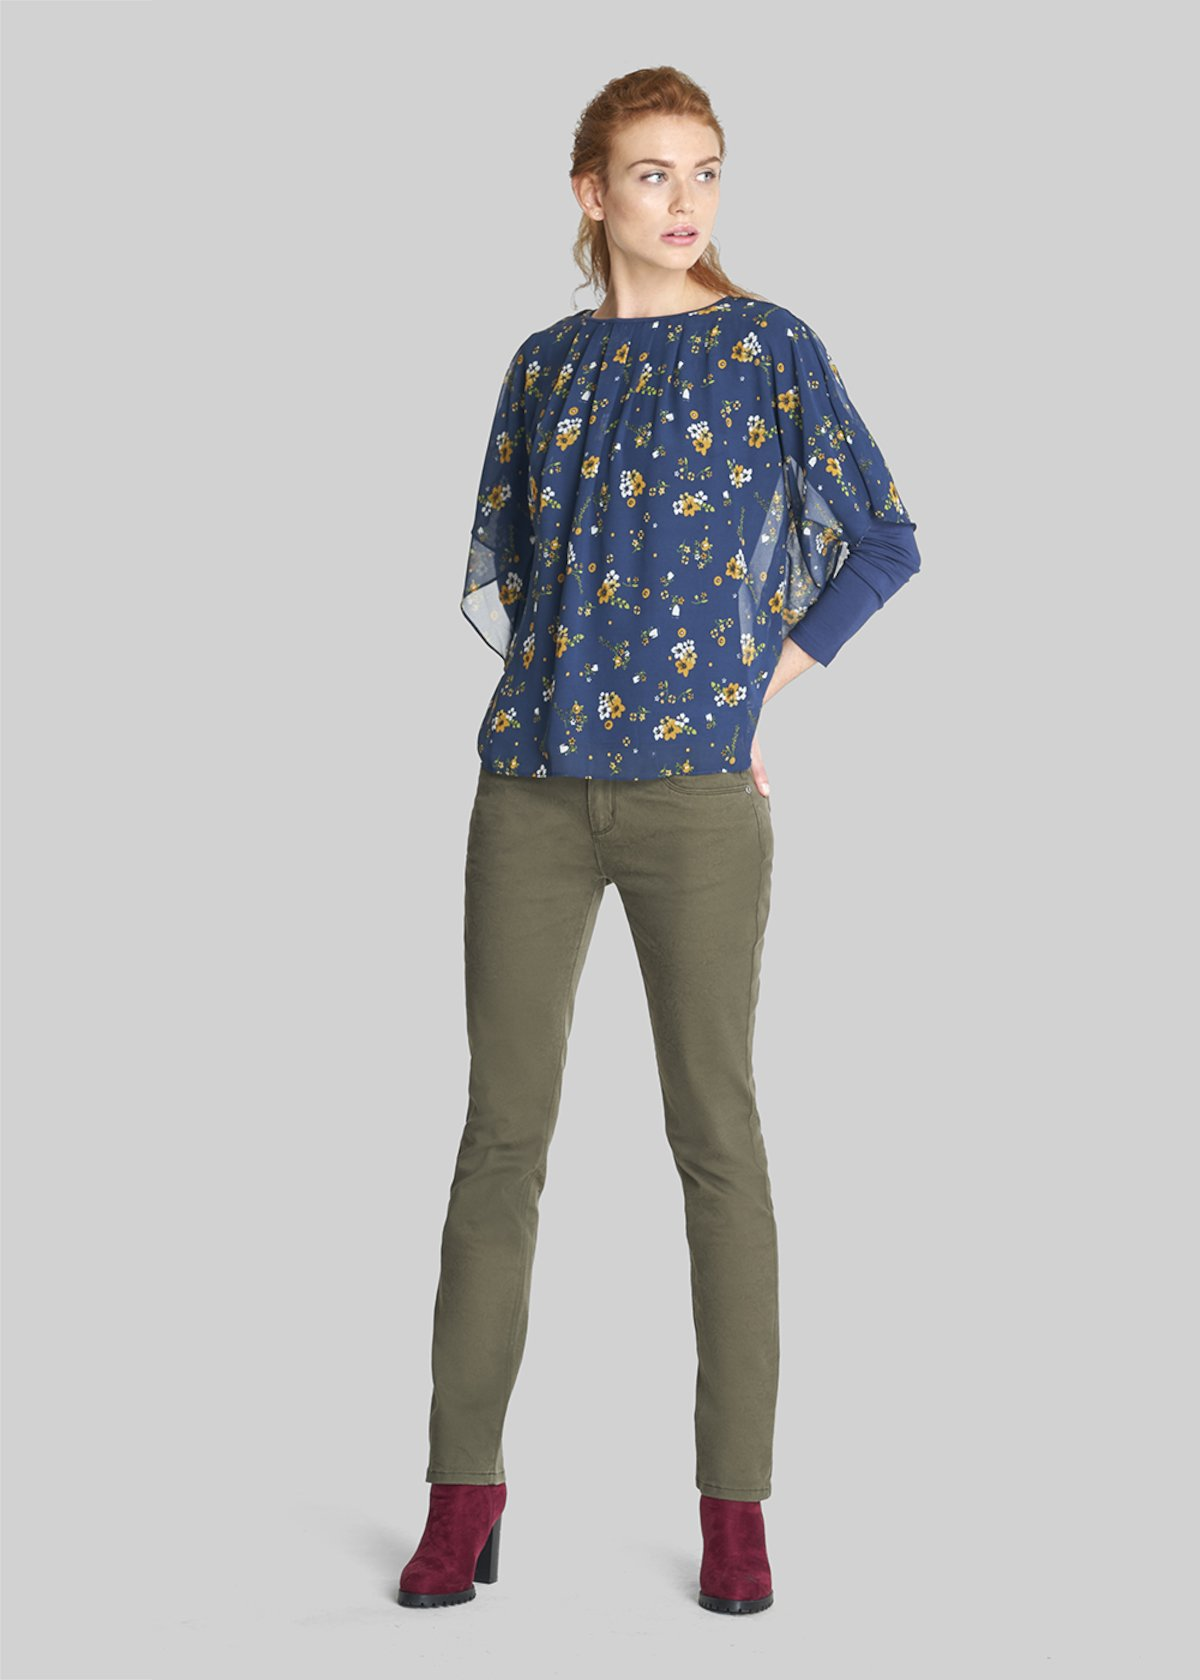 Susanna t-shirt jersey and georgette with micro-floral pattern - Avion / Curry Fantasia